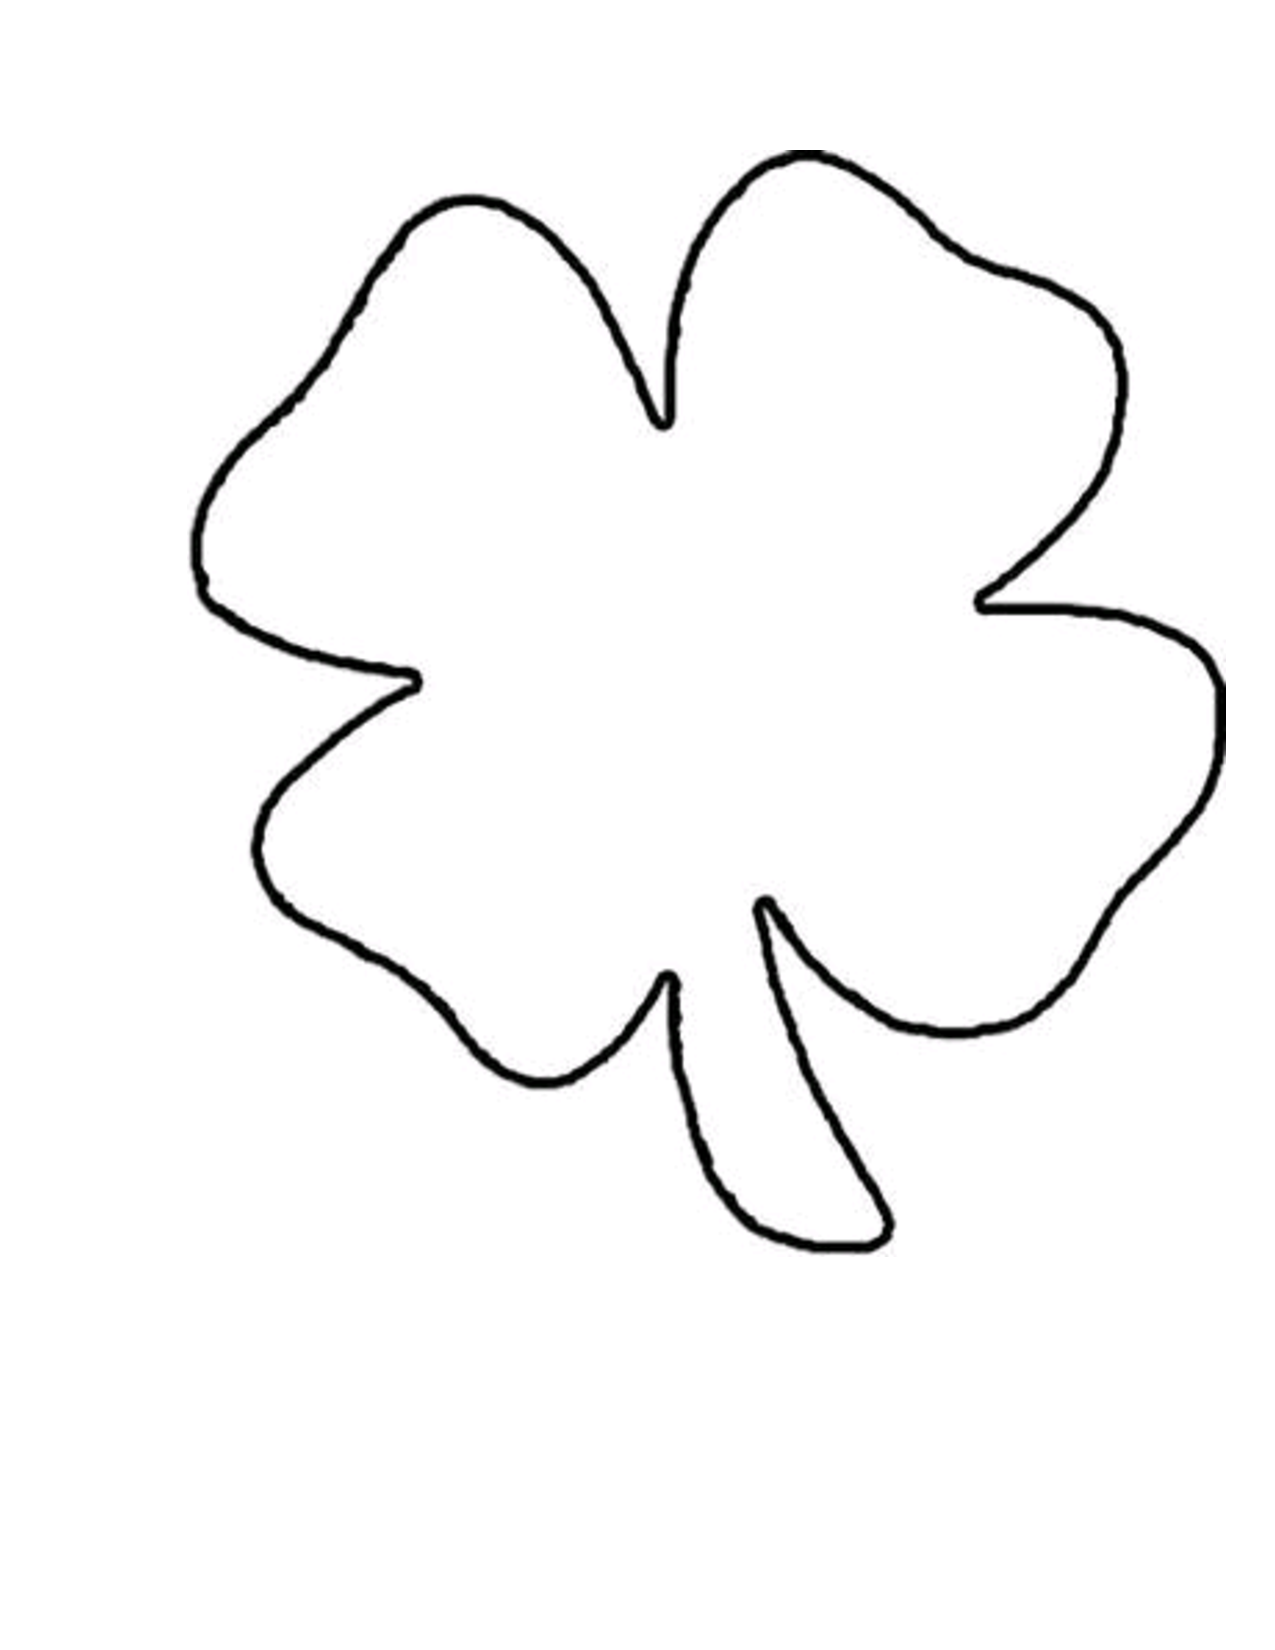 graphic regarding Printable Shamrock titled 4+Clover+Leaf+Template+Shamrock+Behavior st. patricks